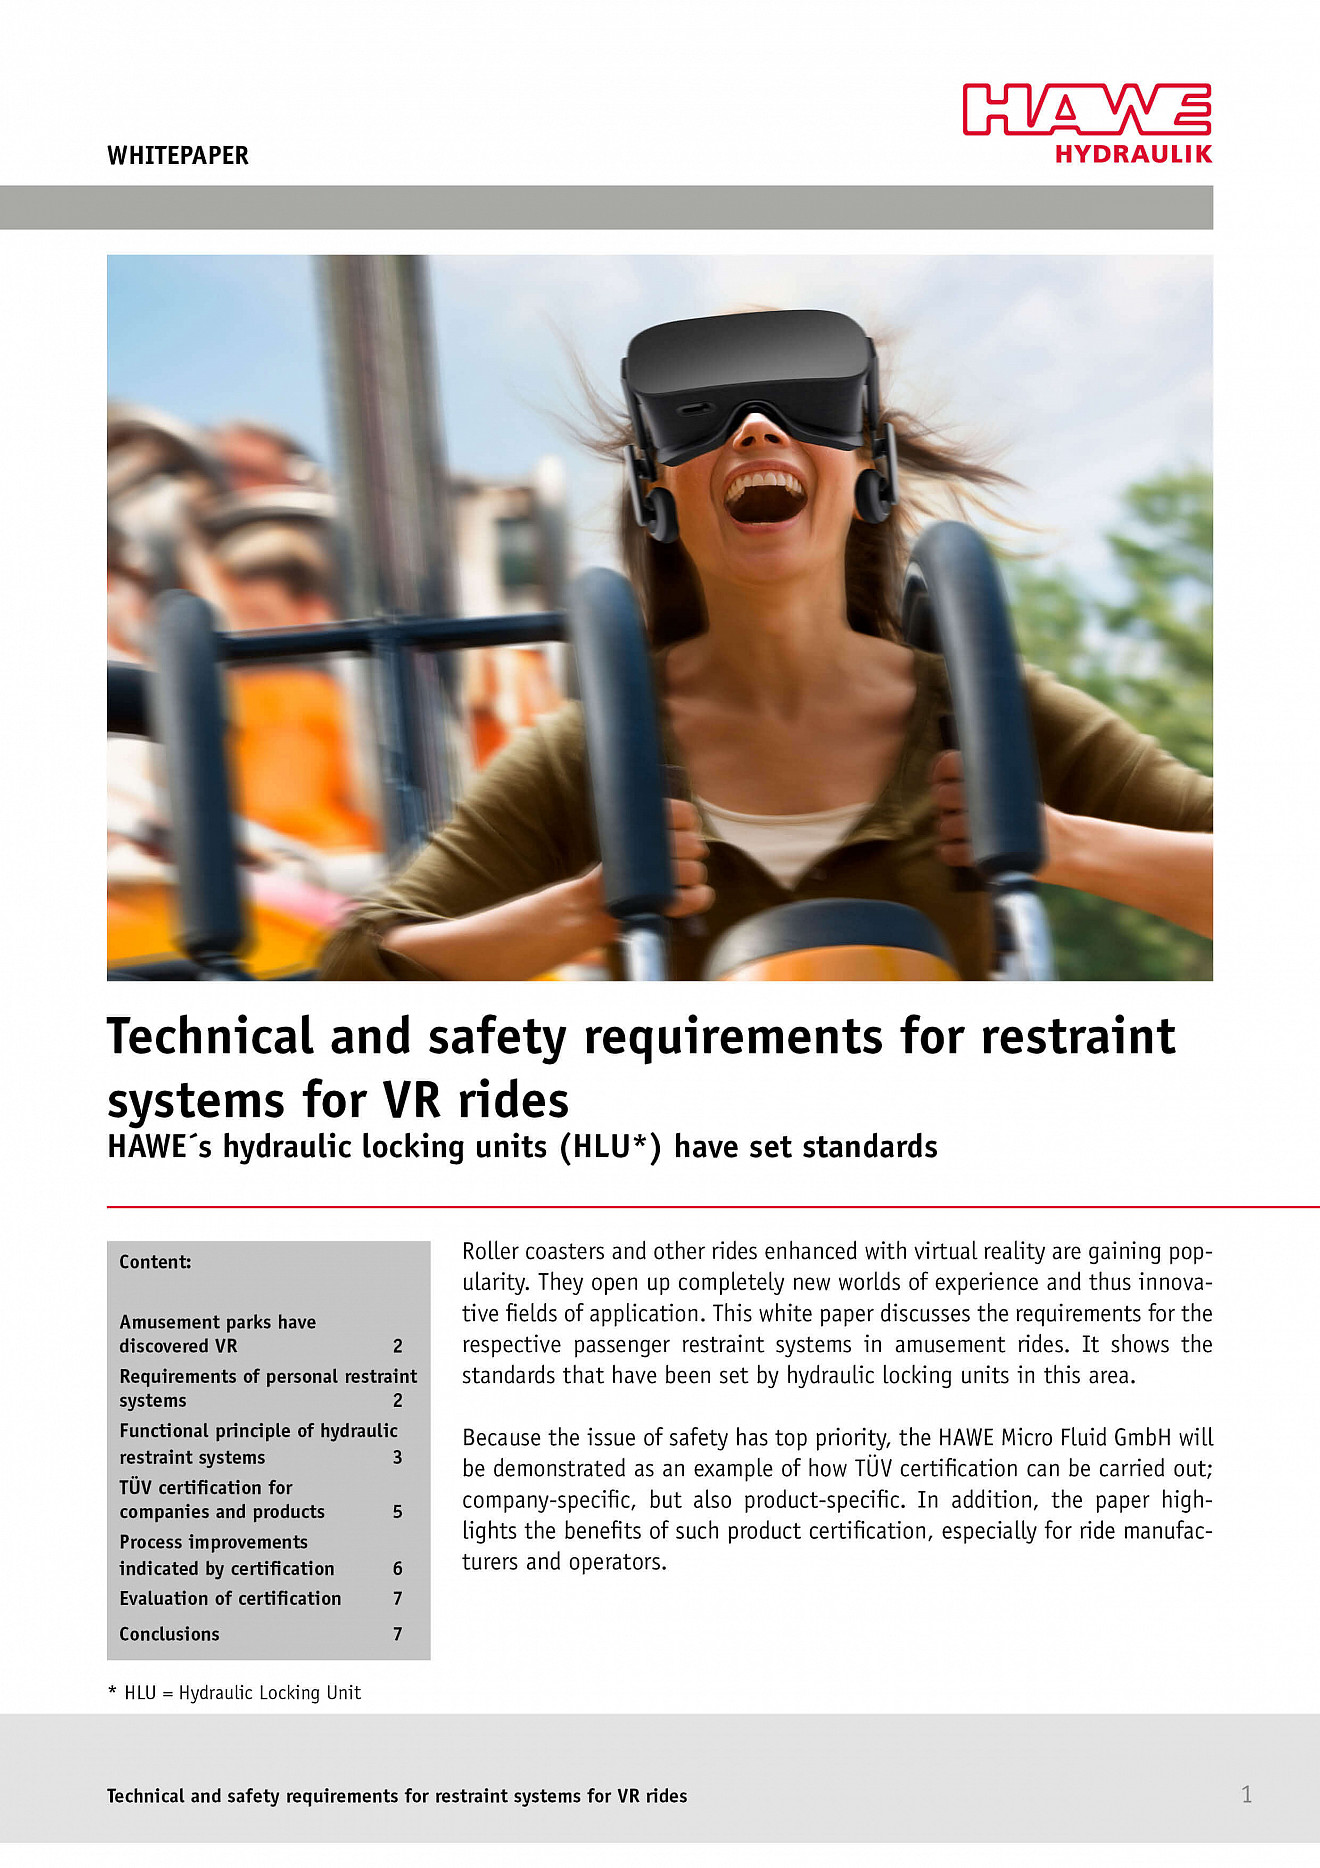 Whitepaper: Restraint systems for VR rides